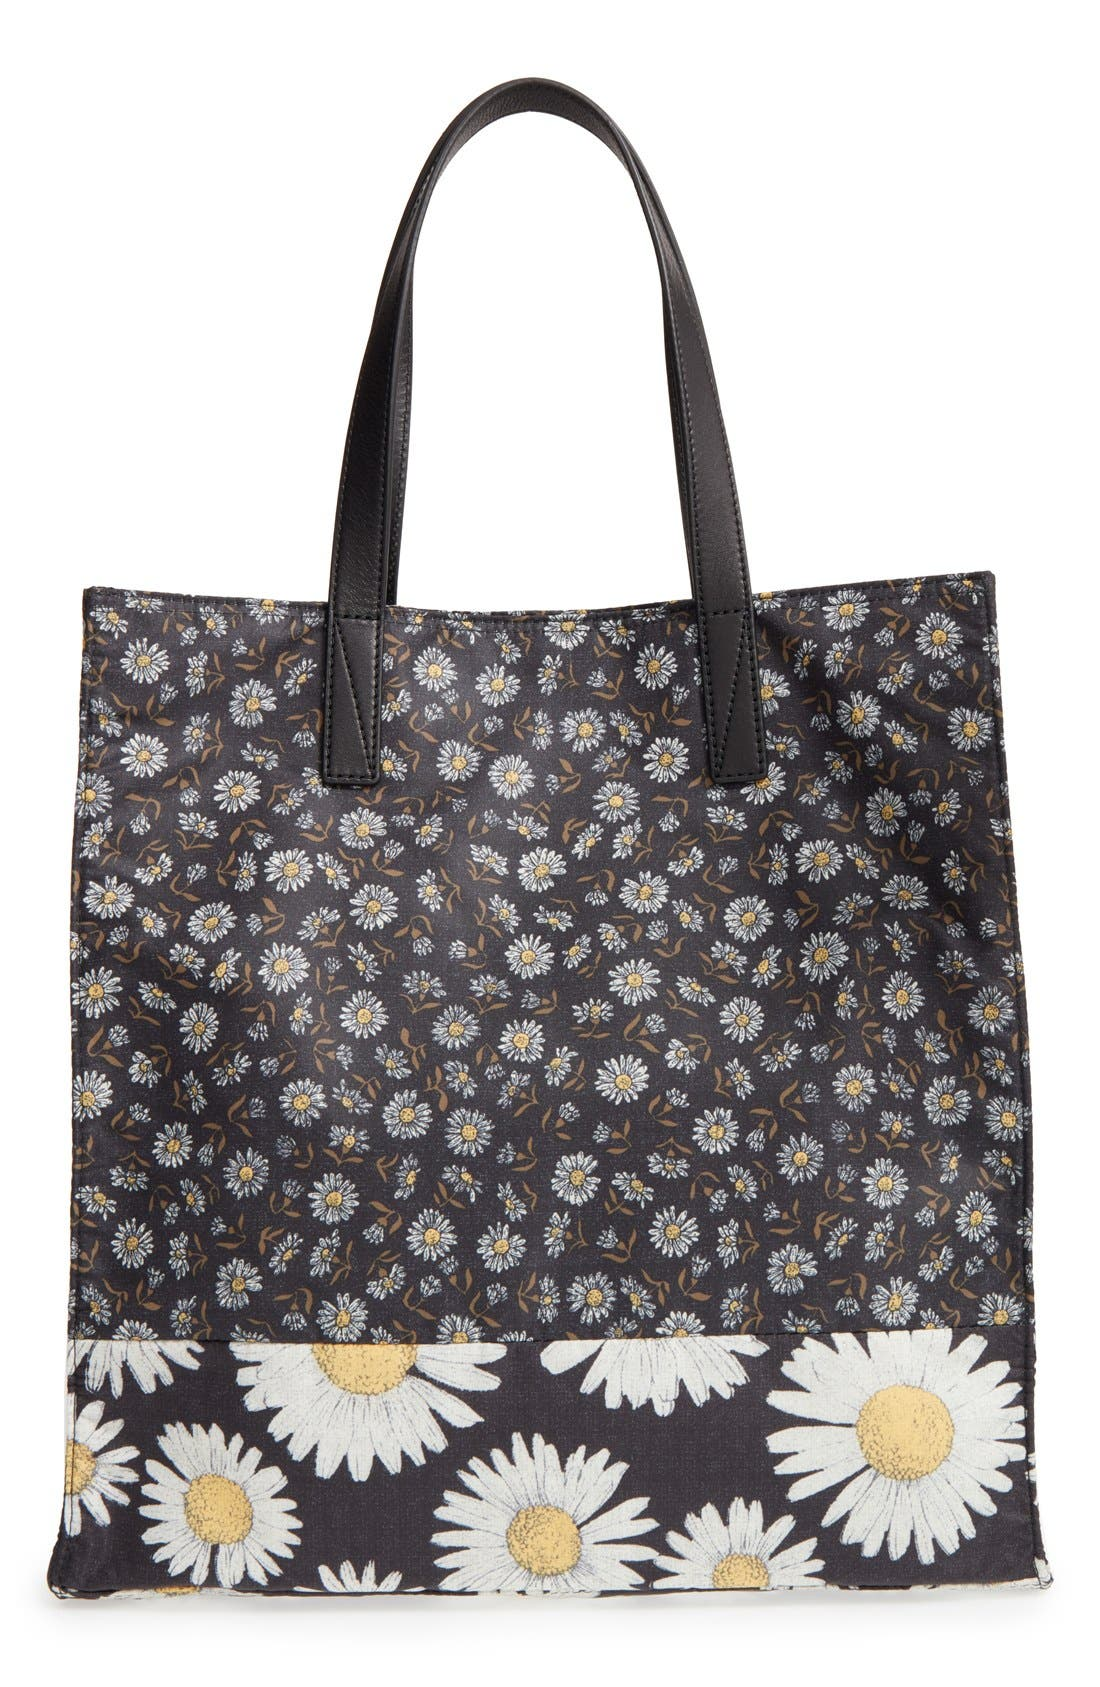 Main Image - MARC JACOBS 'B.Y.O.T. - Daisy' Floral Print Tote